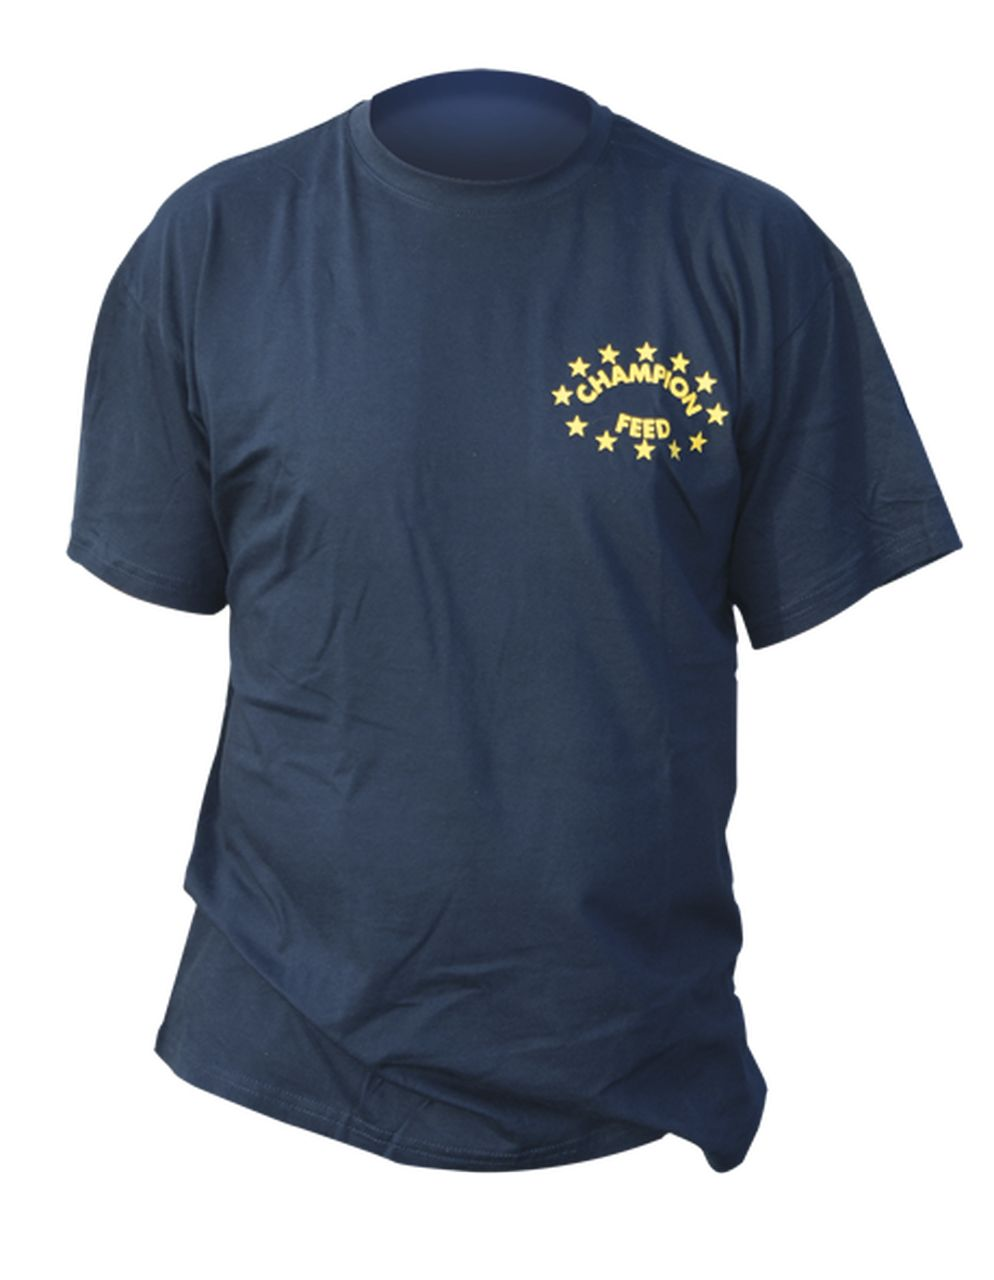 T-Shirt Navy Champion Feed XXXL